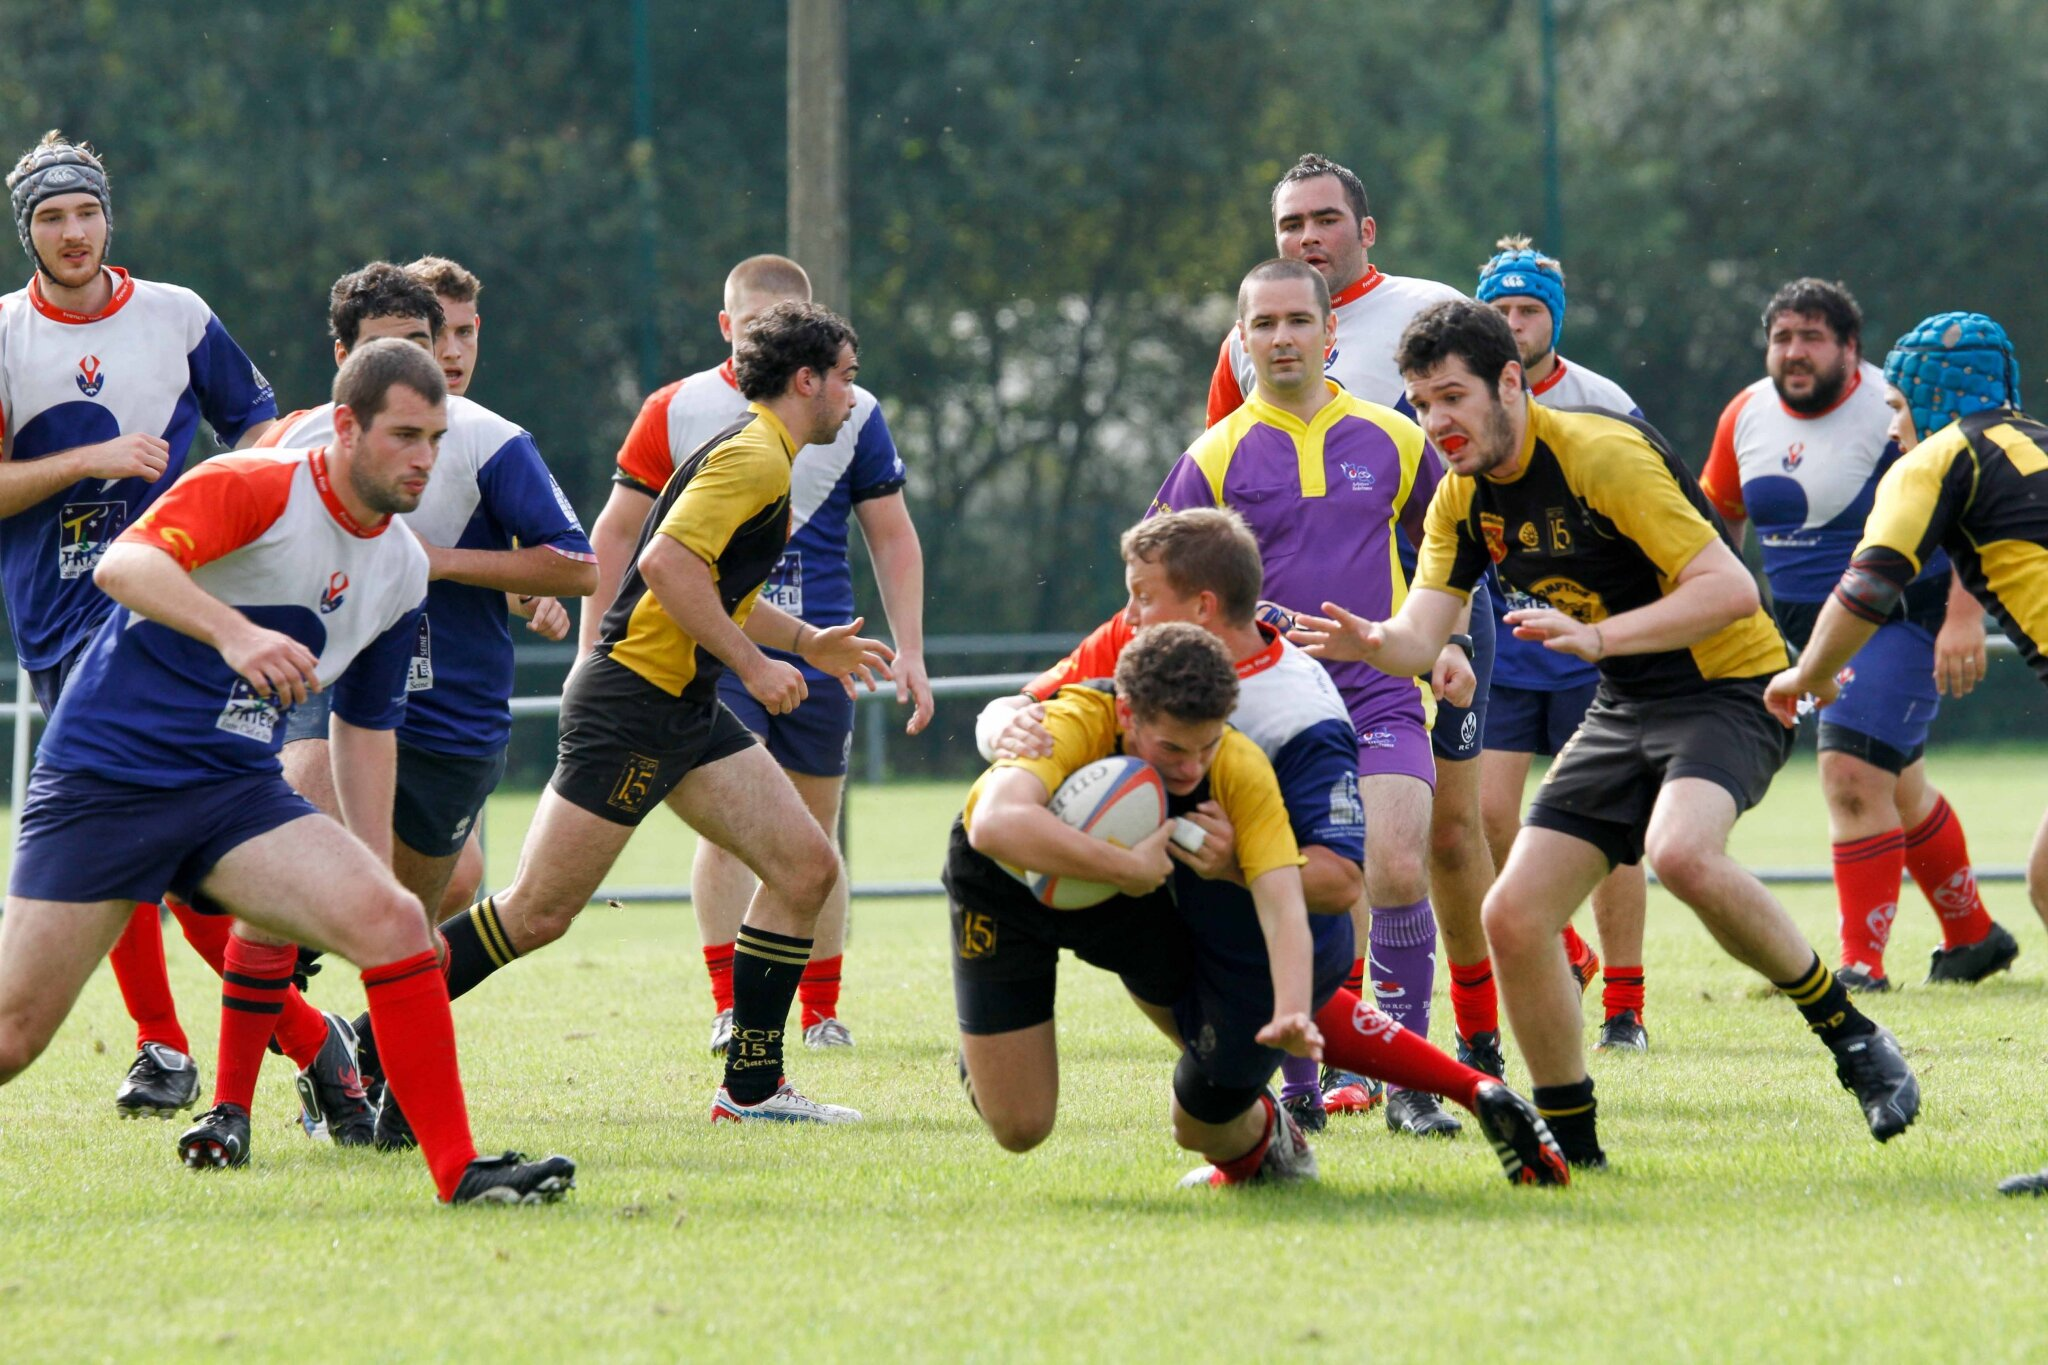 RCT-RCP15-R16